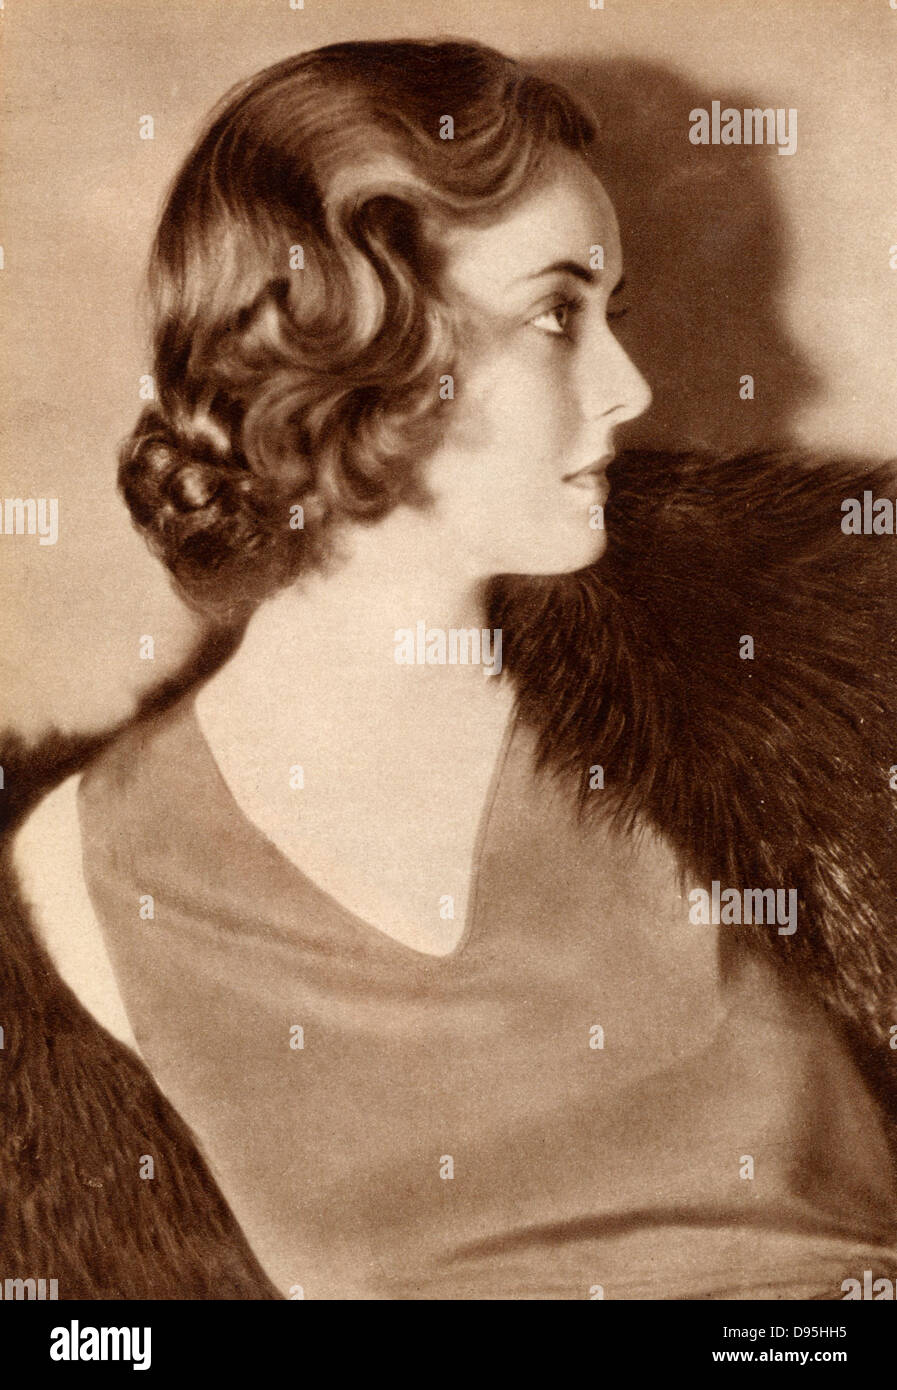 Bette Davis (1908-1989)  American Hollywood actress and film star, as a  young woman. Photograph. Halftone. - Stock Image